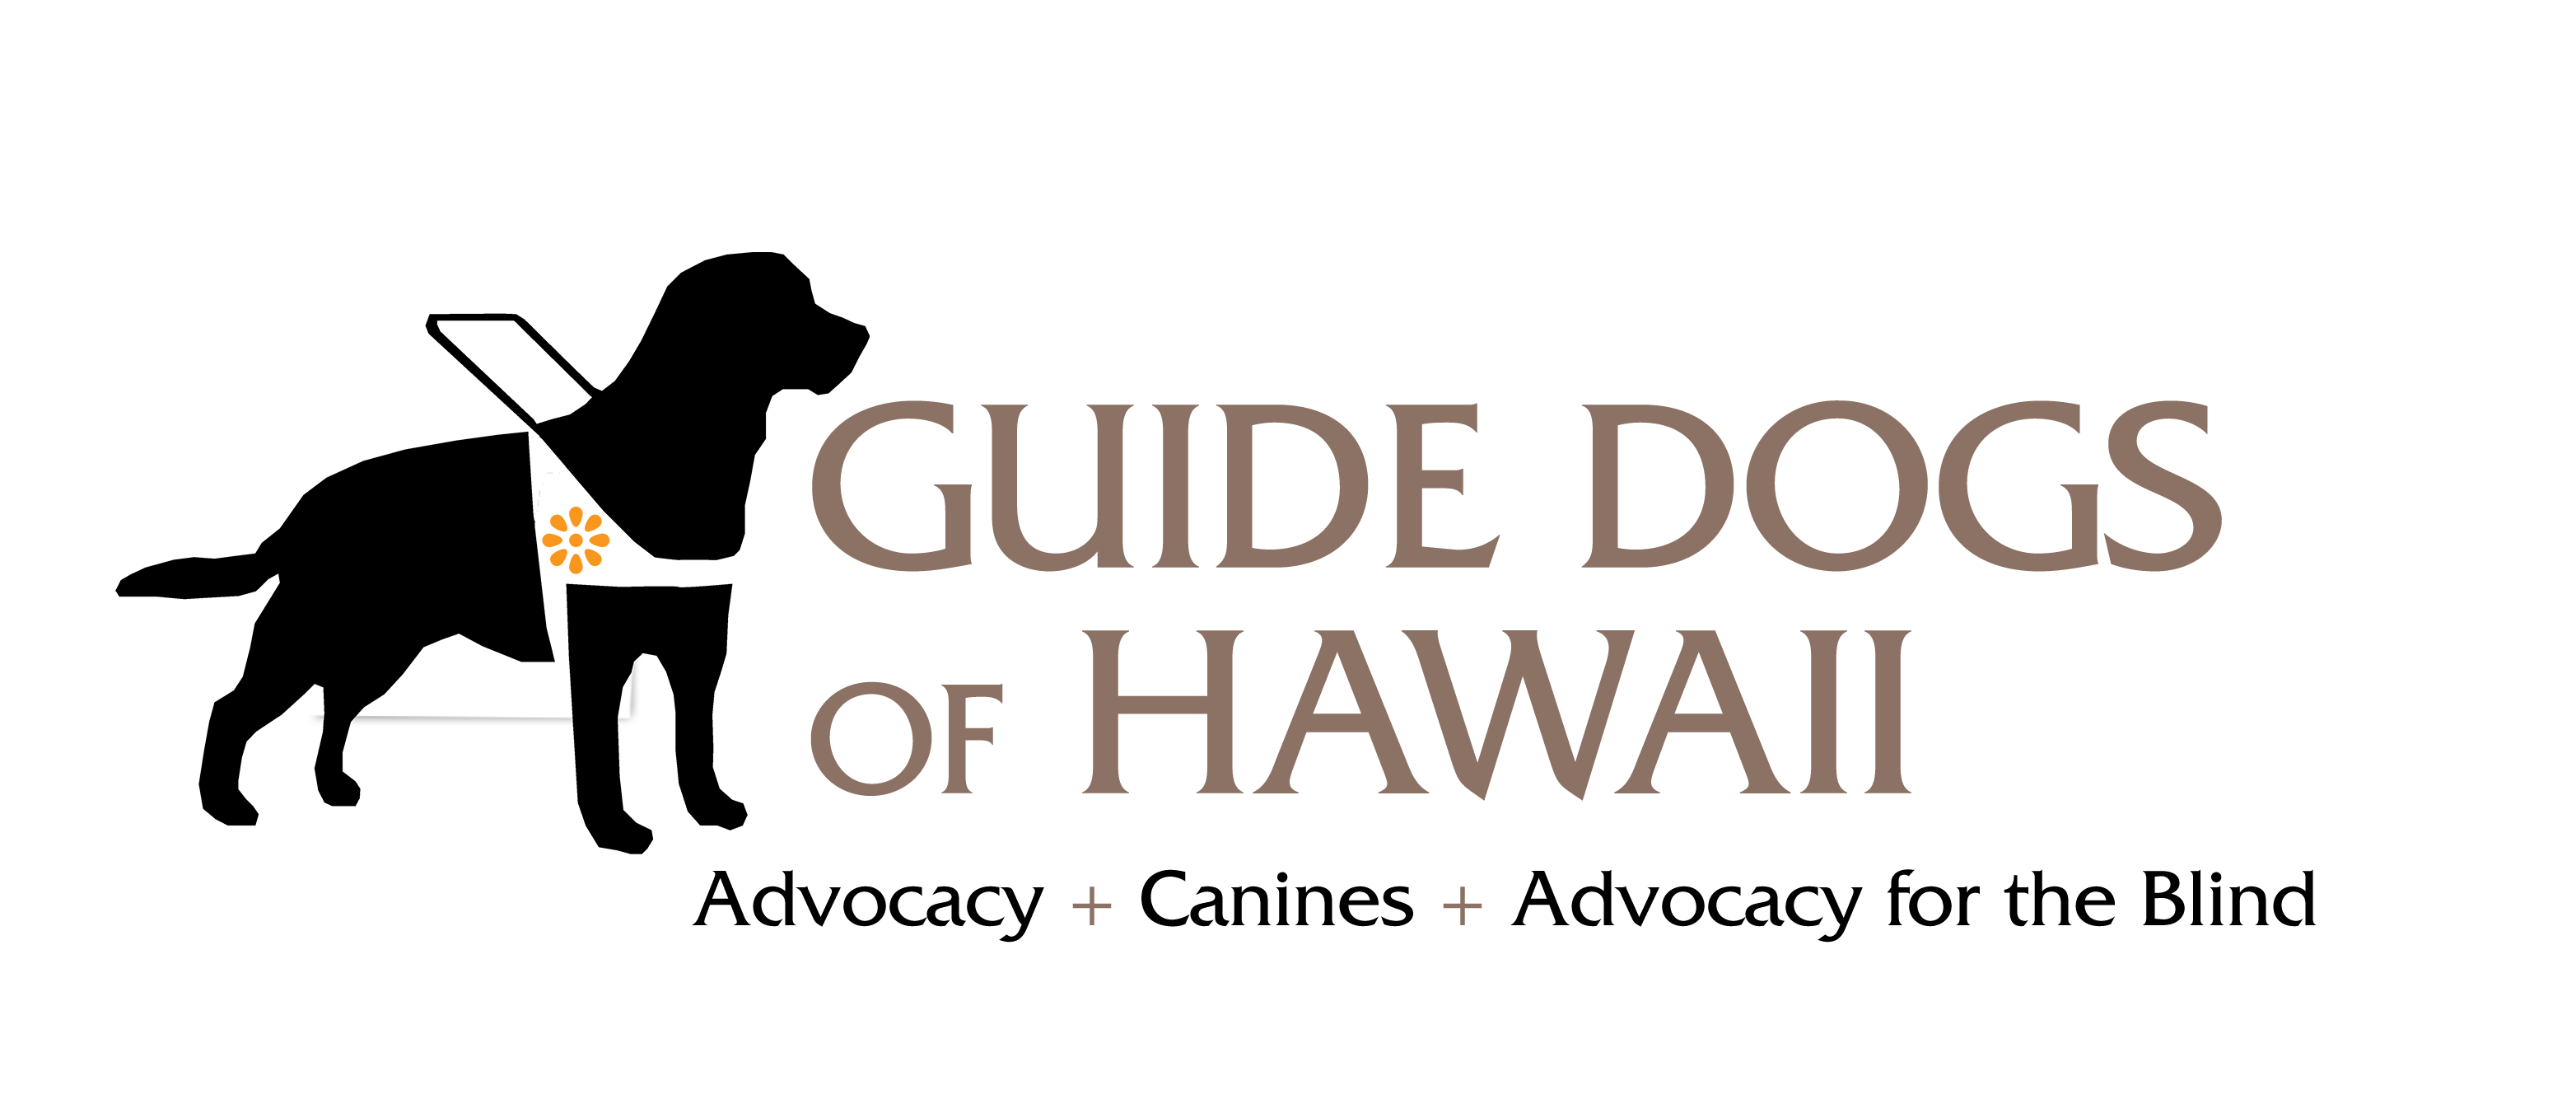 Guide Dogs of Hawaii: Adaptive Aids, Canines and Advocacy for the Blind